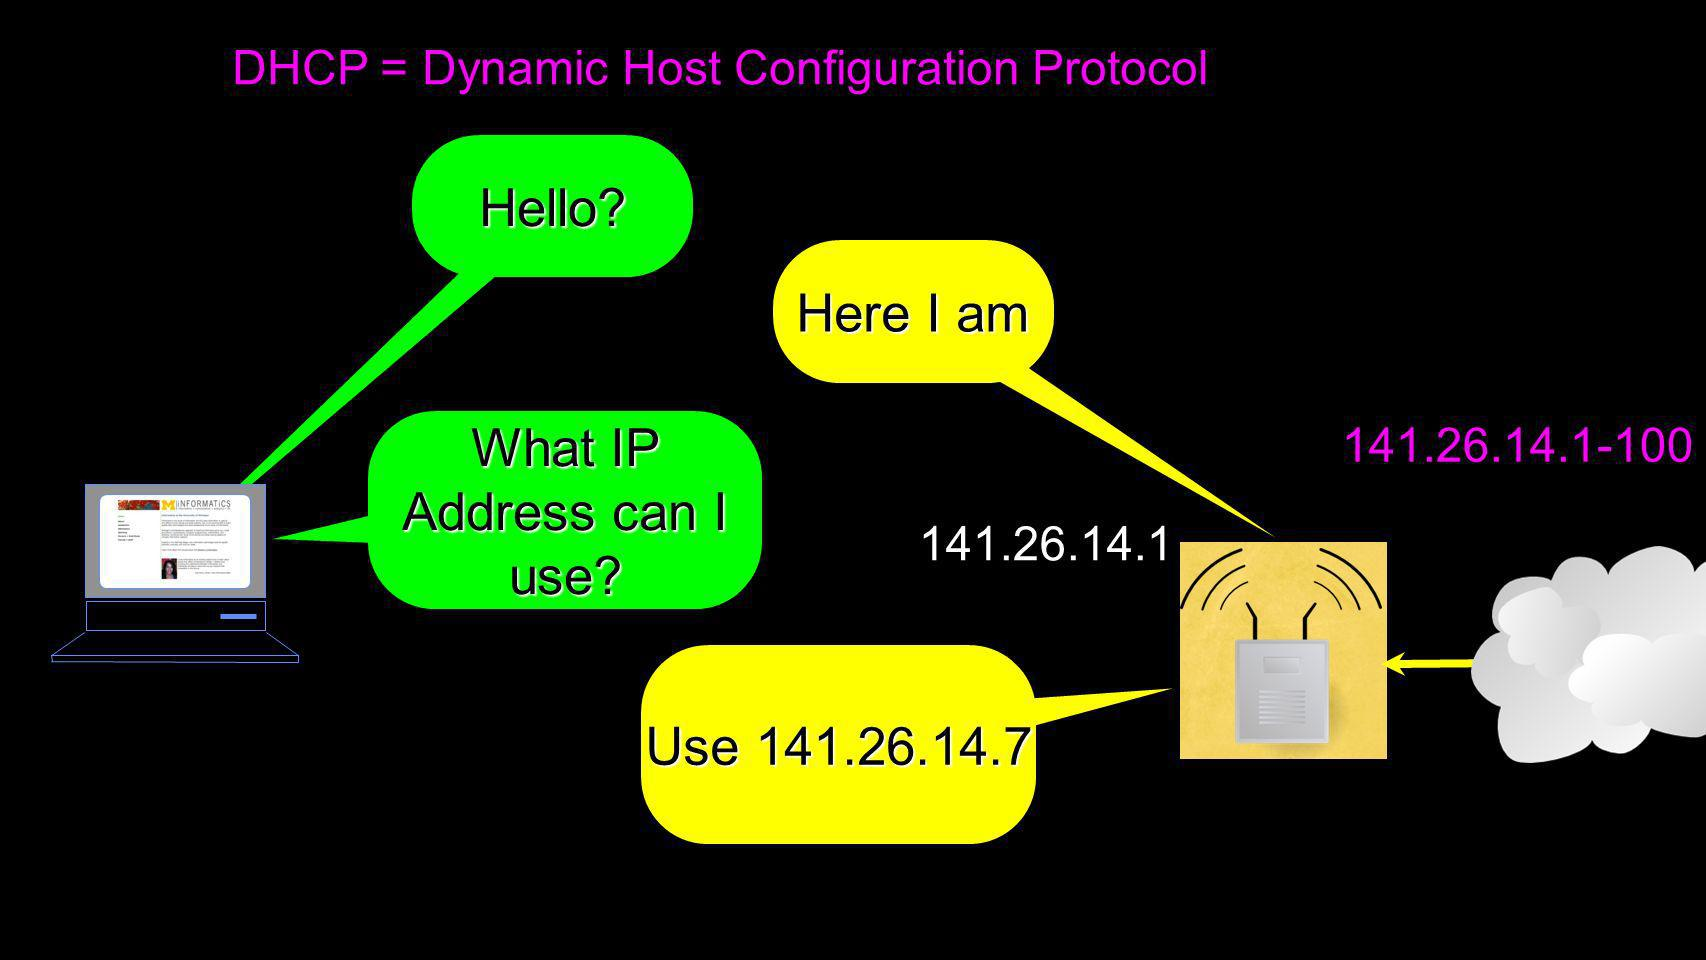 Hello? DHCP = Dynamic Host Configuration Protocol 141.26.14.1 Here I am What IP Address can I use? Use 141.26.14.7 141.26.14.1-100